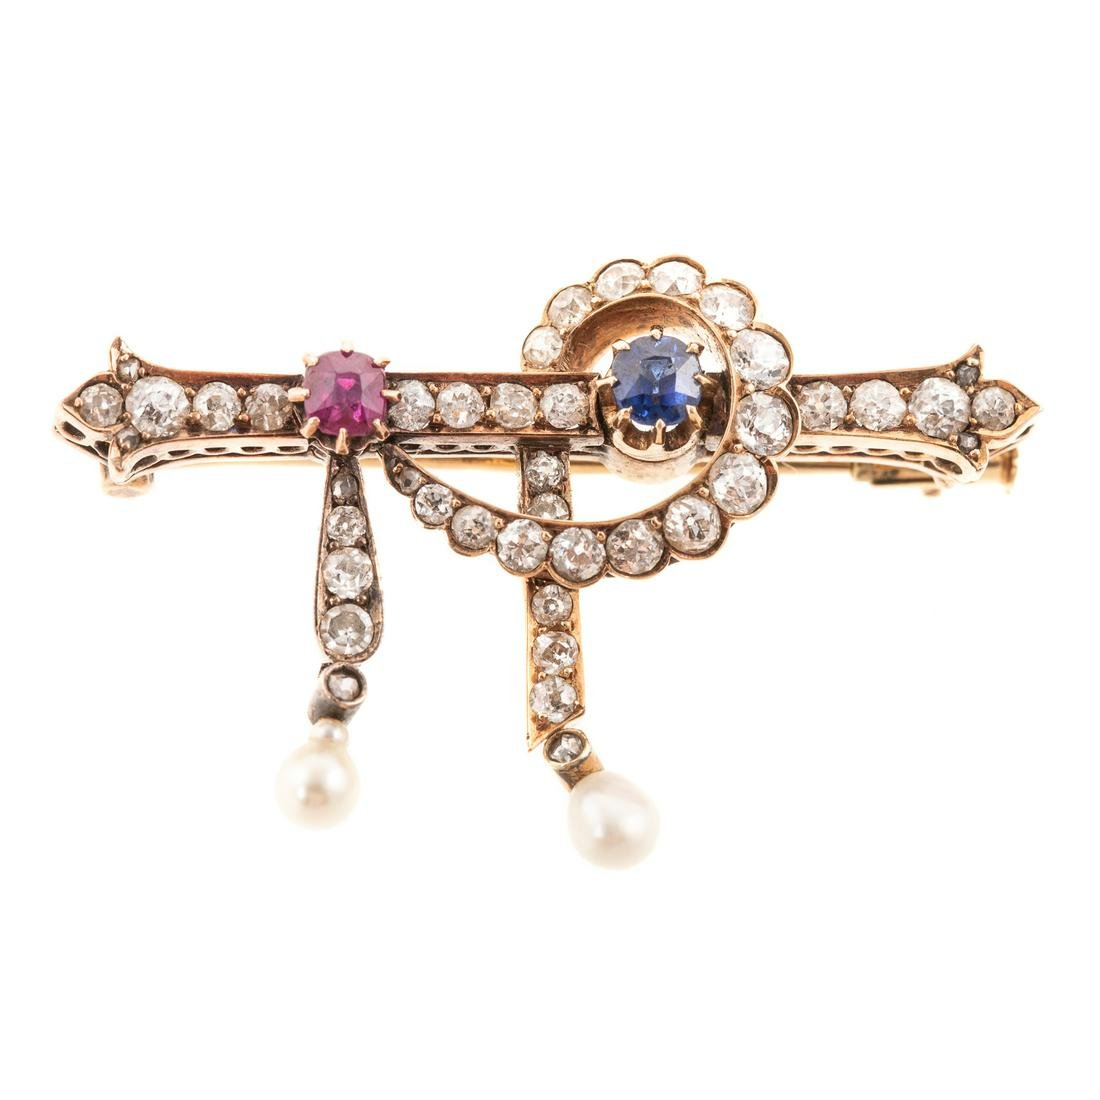 An 18K Antique Diamond, Ruby & Sapphire Brooch